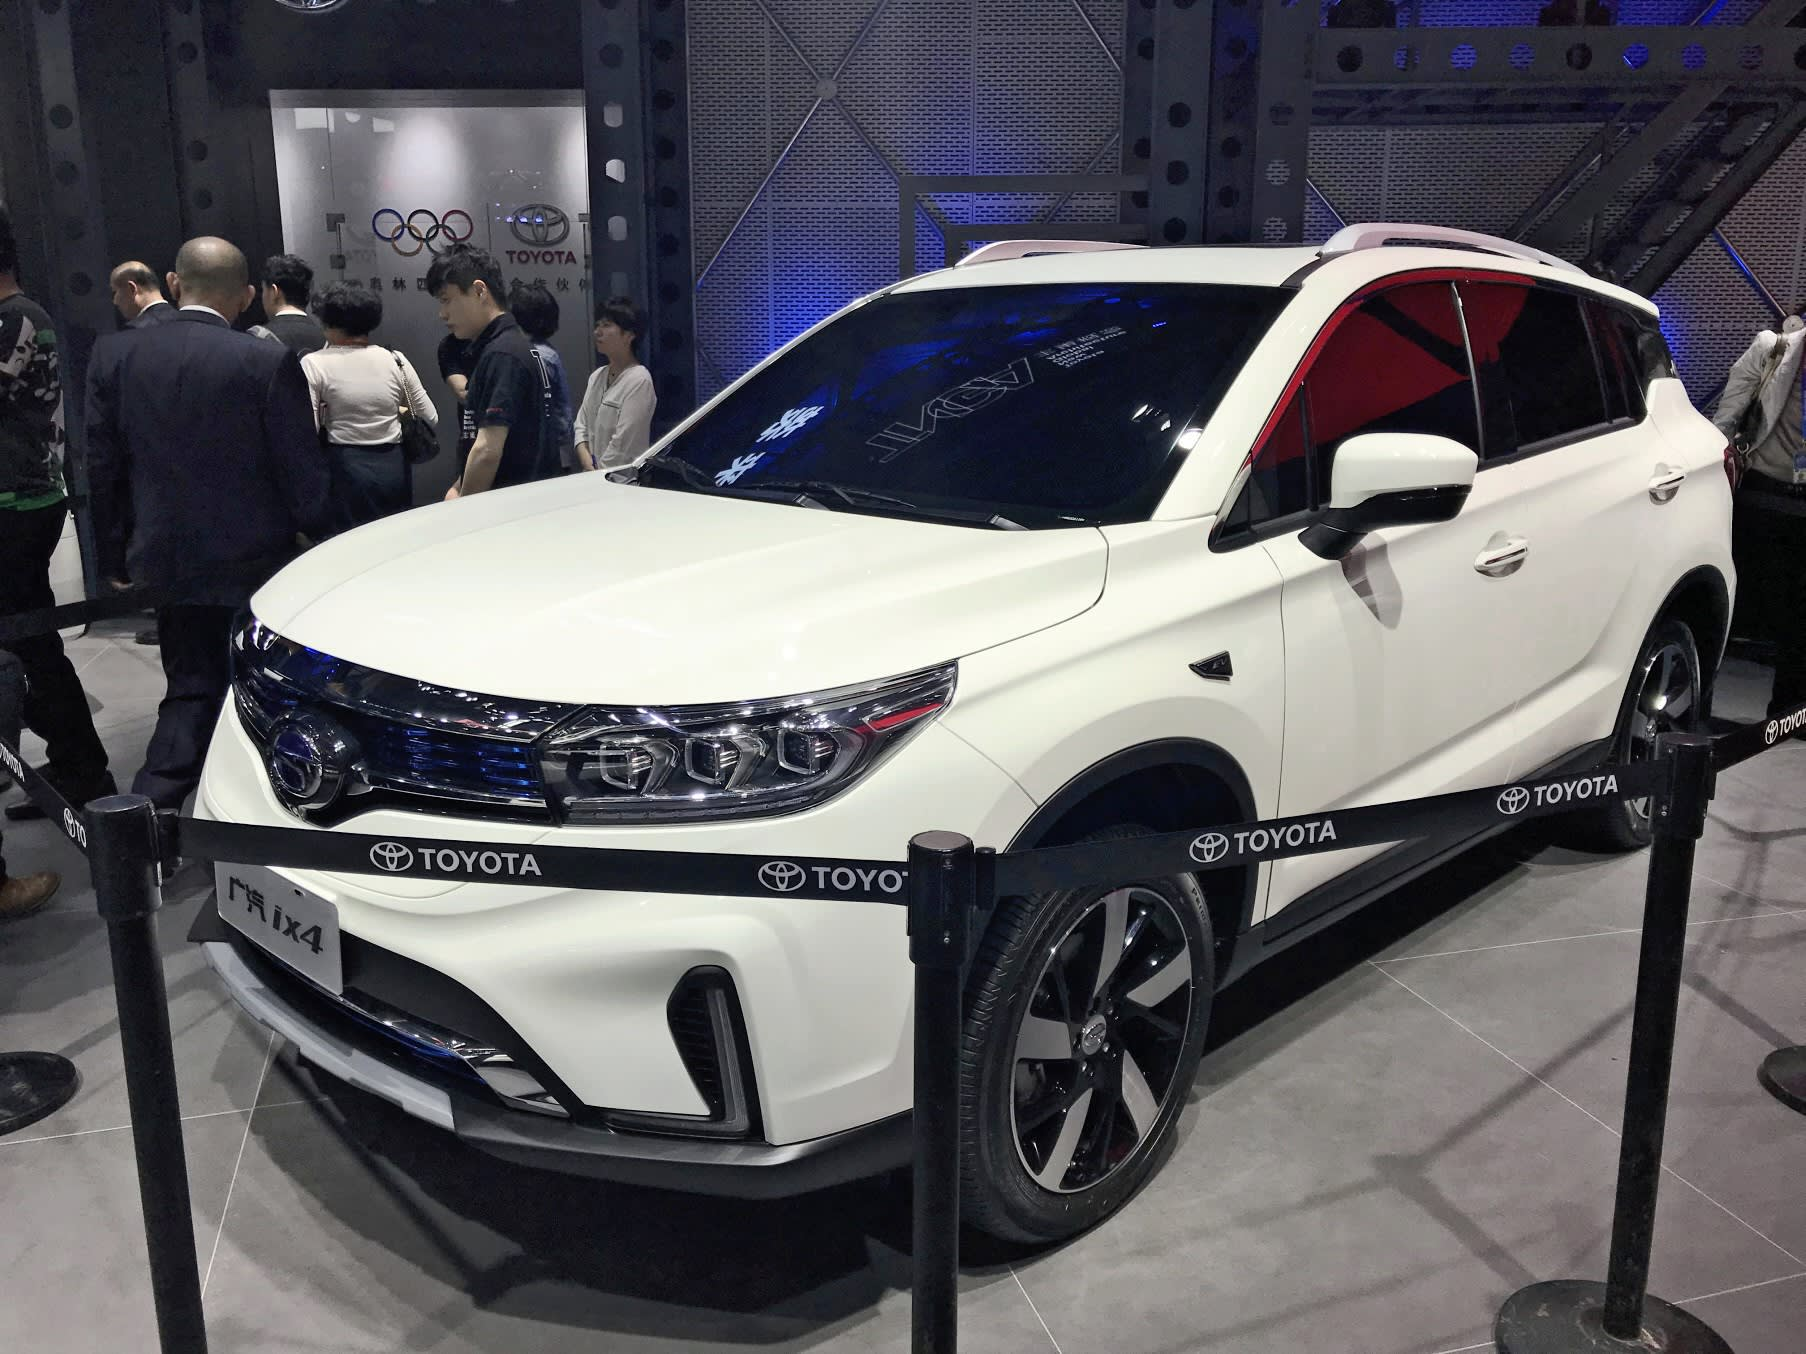 Toyota pushes forward launch of electric vehicle in China ...